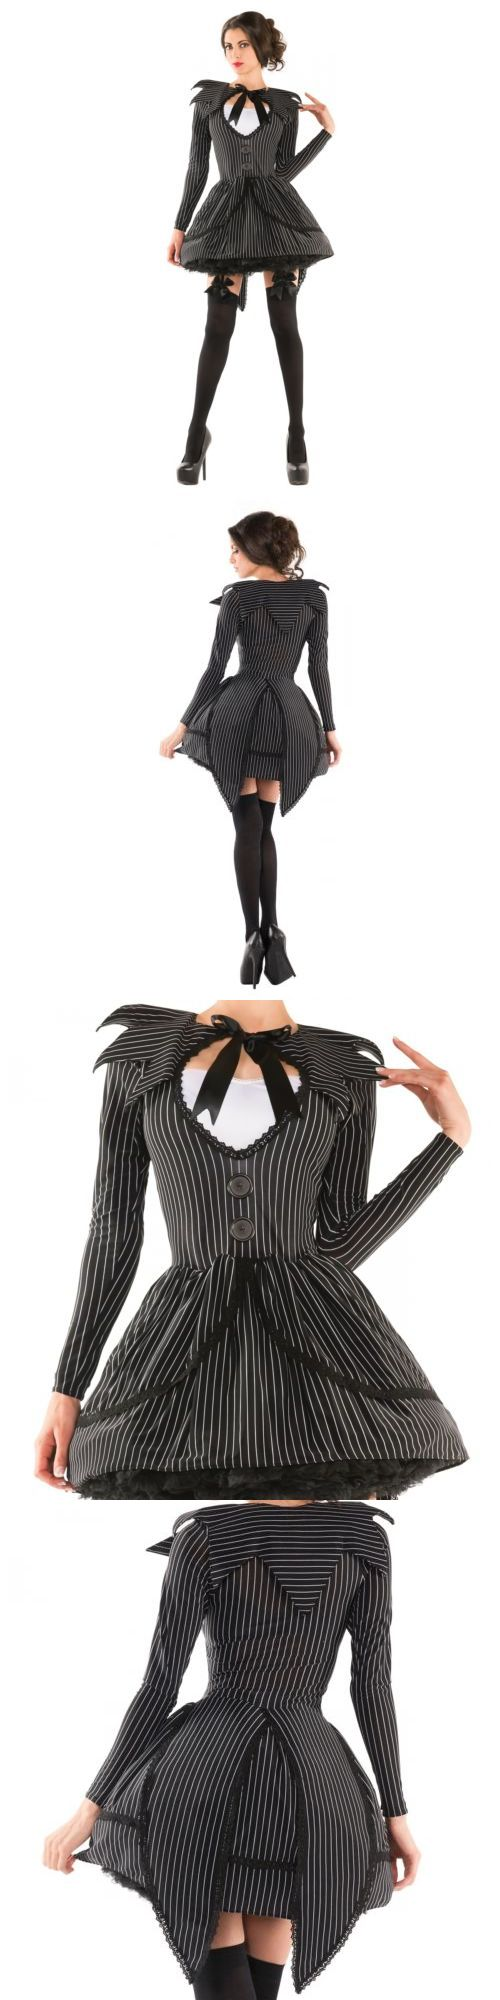 Halloween Costumes Women Jack Skellington Costume Adult